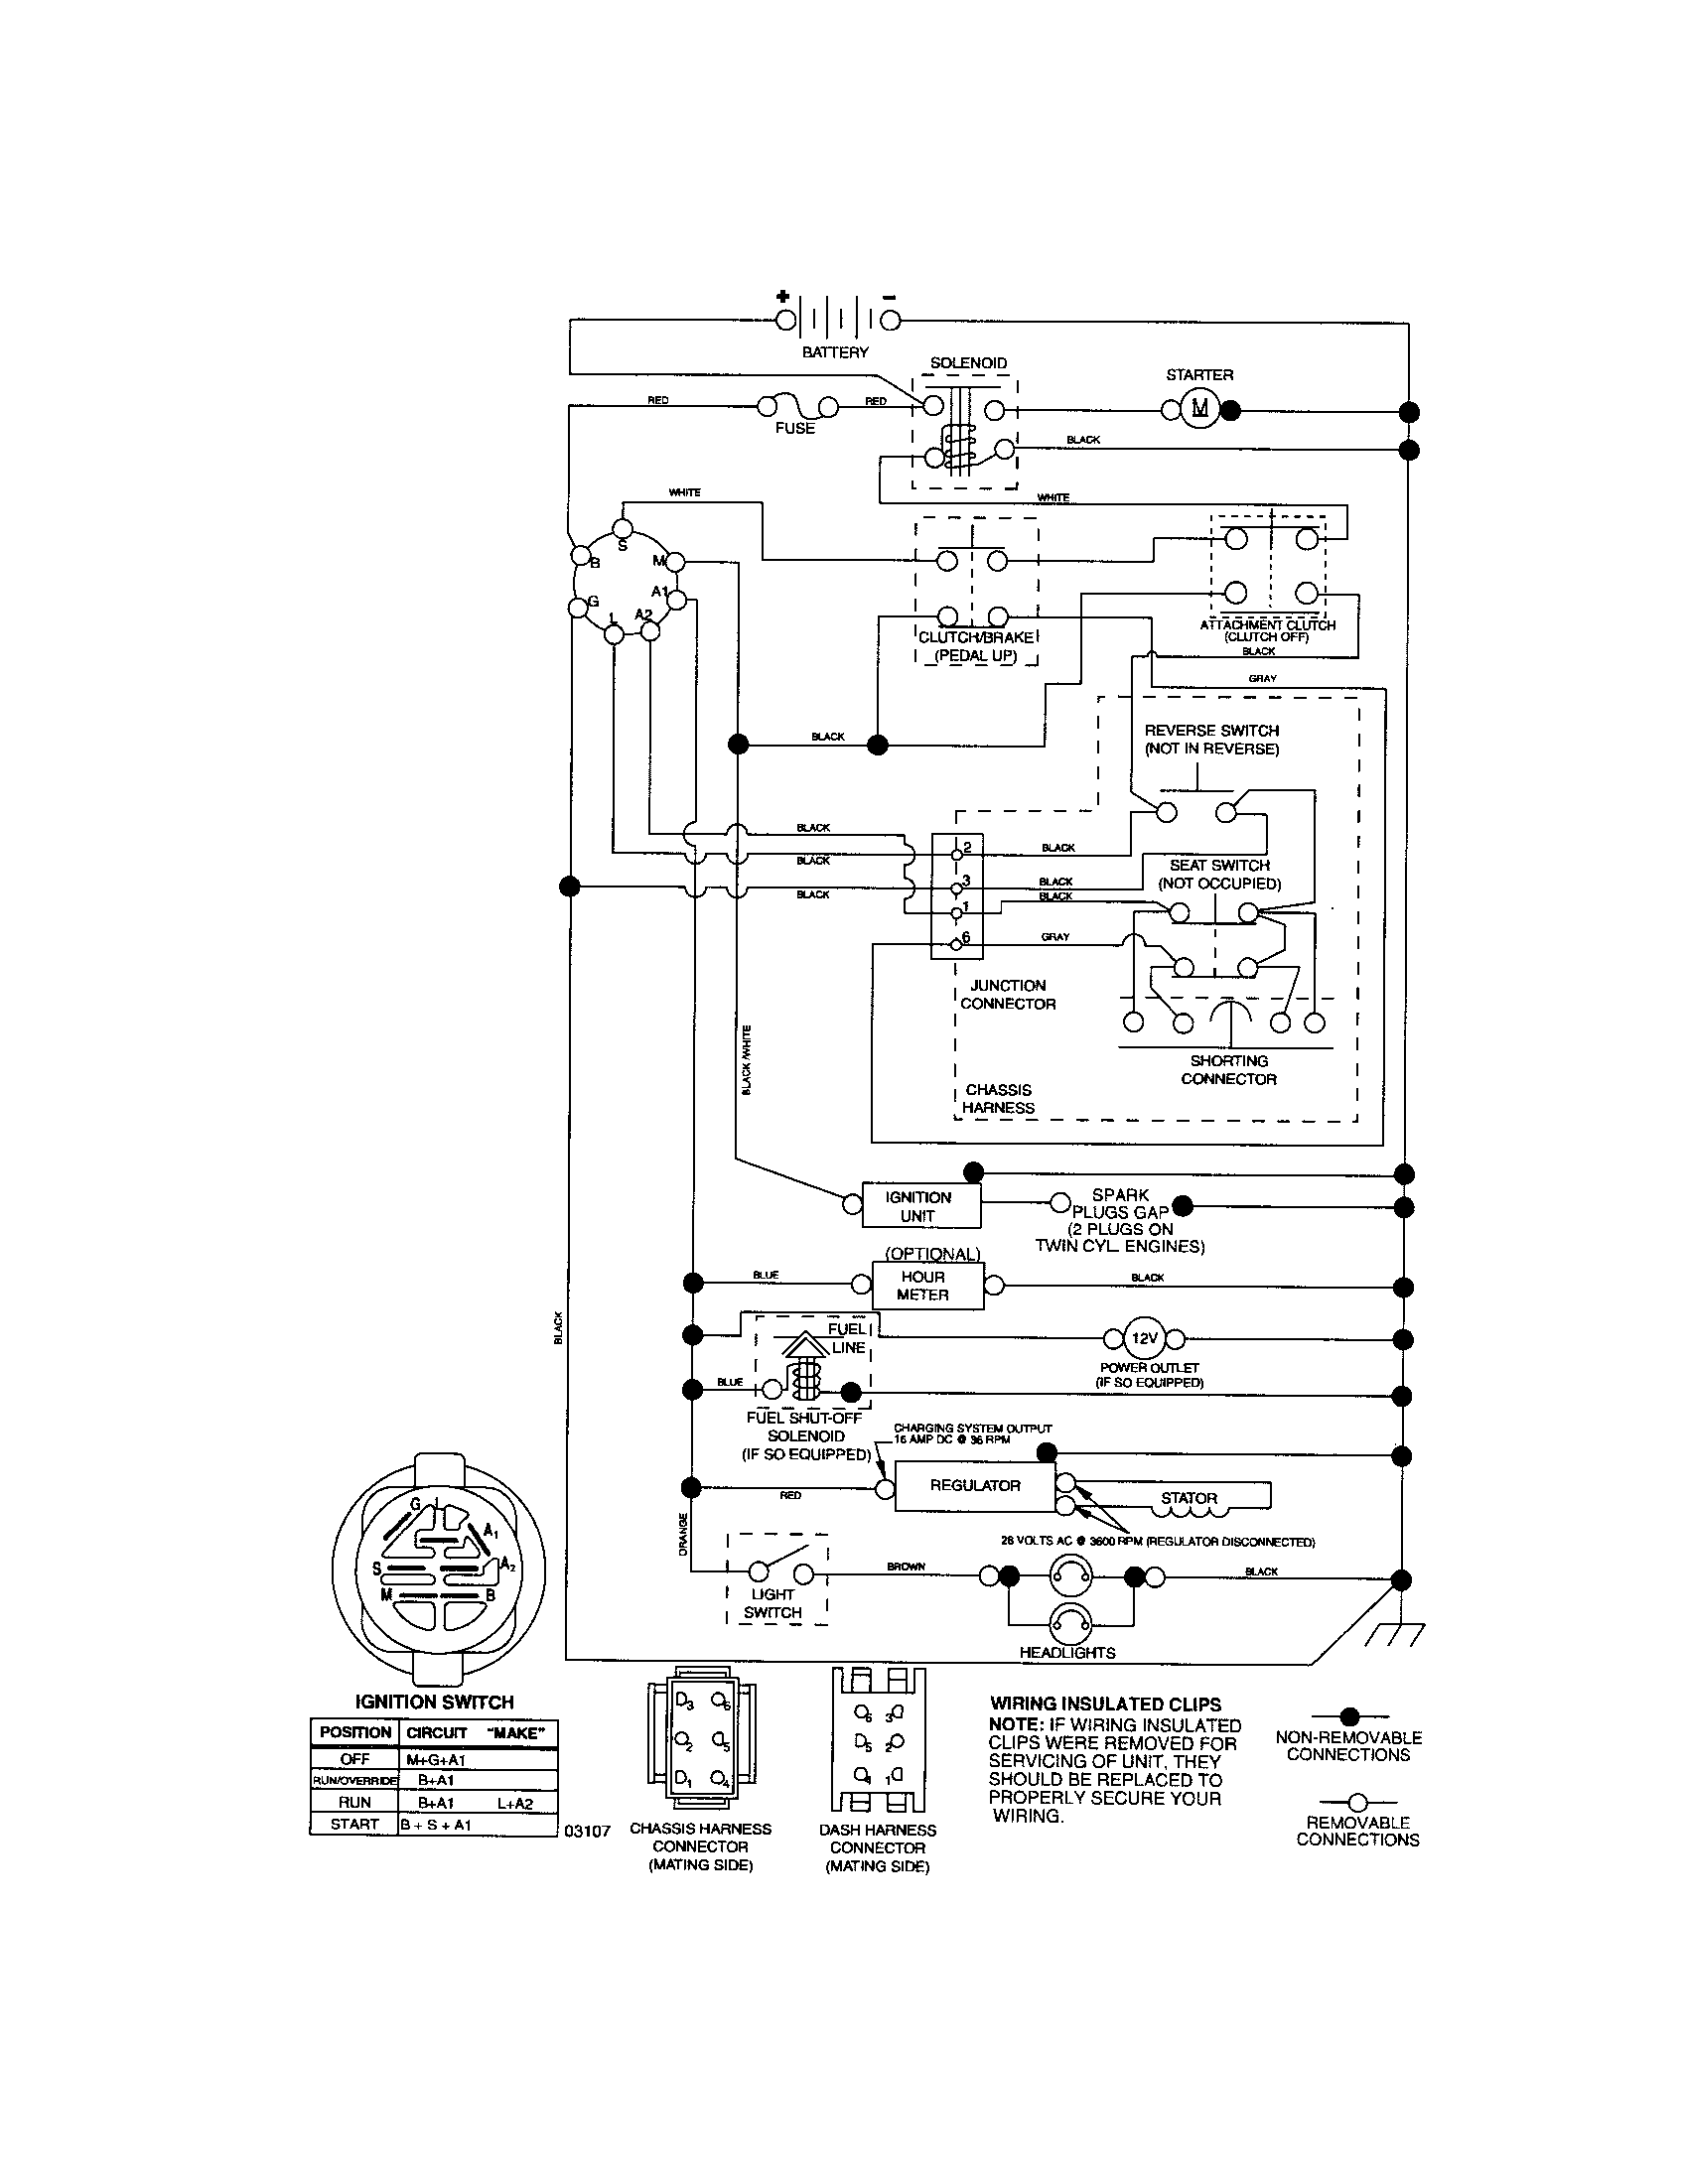 Four Pole Solenoid Wiring Diagram | Wiring Liry  Pole Solenoid Wiring Diagram Lawn Mower on riding lawn mower solenoid diagram, lawn mower ignition diagram, lawn mower magneto diagram, lawn mower carburetor diagram, lawn mower seat wiring diagram, murray riding mower solenoid diagram, mtd lawn mower wiring diagram, scotts lawn mower wiring diagram, white lawn mower wiring diagram, dixon lawn mower wiring diagram, lawn tractor starter switch wiring diagram, john deere lawn mower wiring diagram, husqvarna lawn mower diagram, riding mower wiring diagram, craftsman lt1000 riding mower parts diagram, lawn mower switch wiring diagram, lawn mower coil wiring, sabre lawn mower wiring diagram, murray mower wiring diagram, snapper mower wiring diagram,